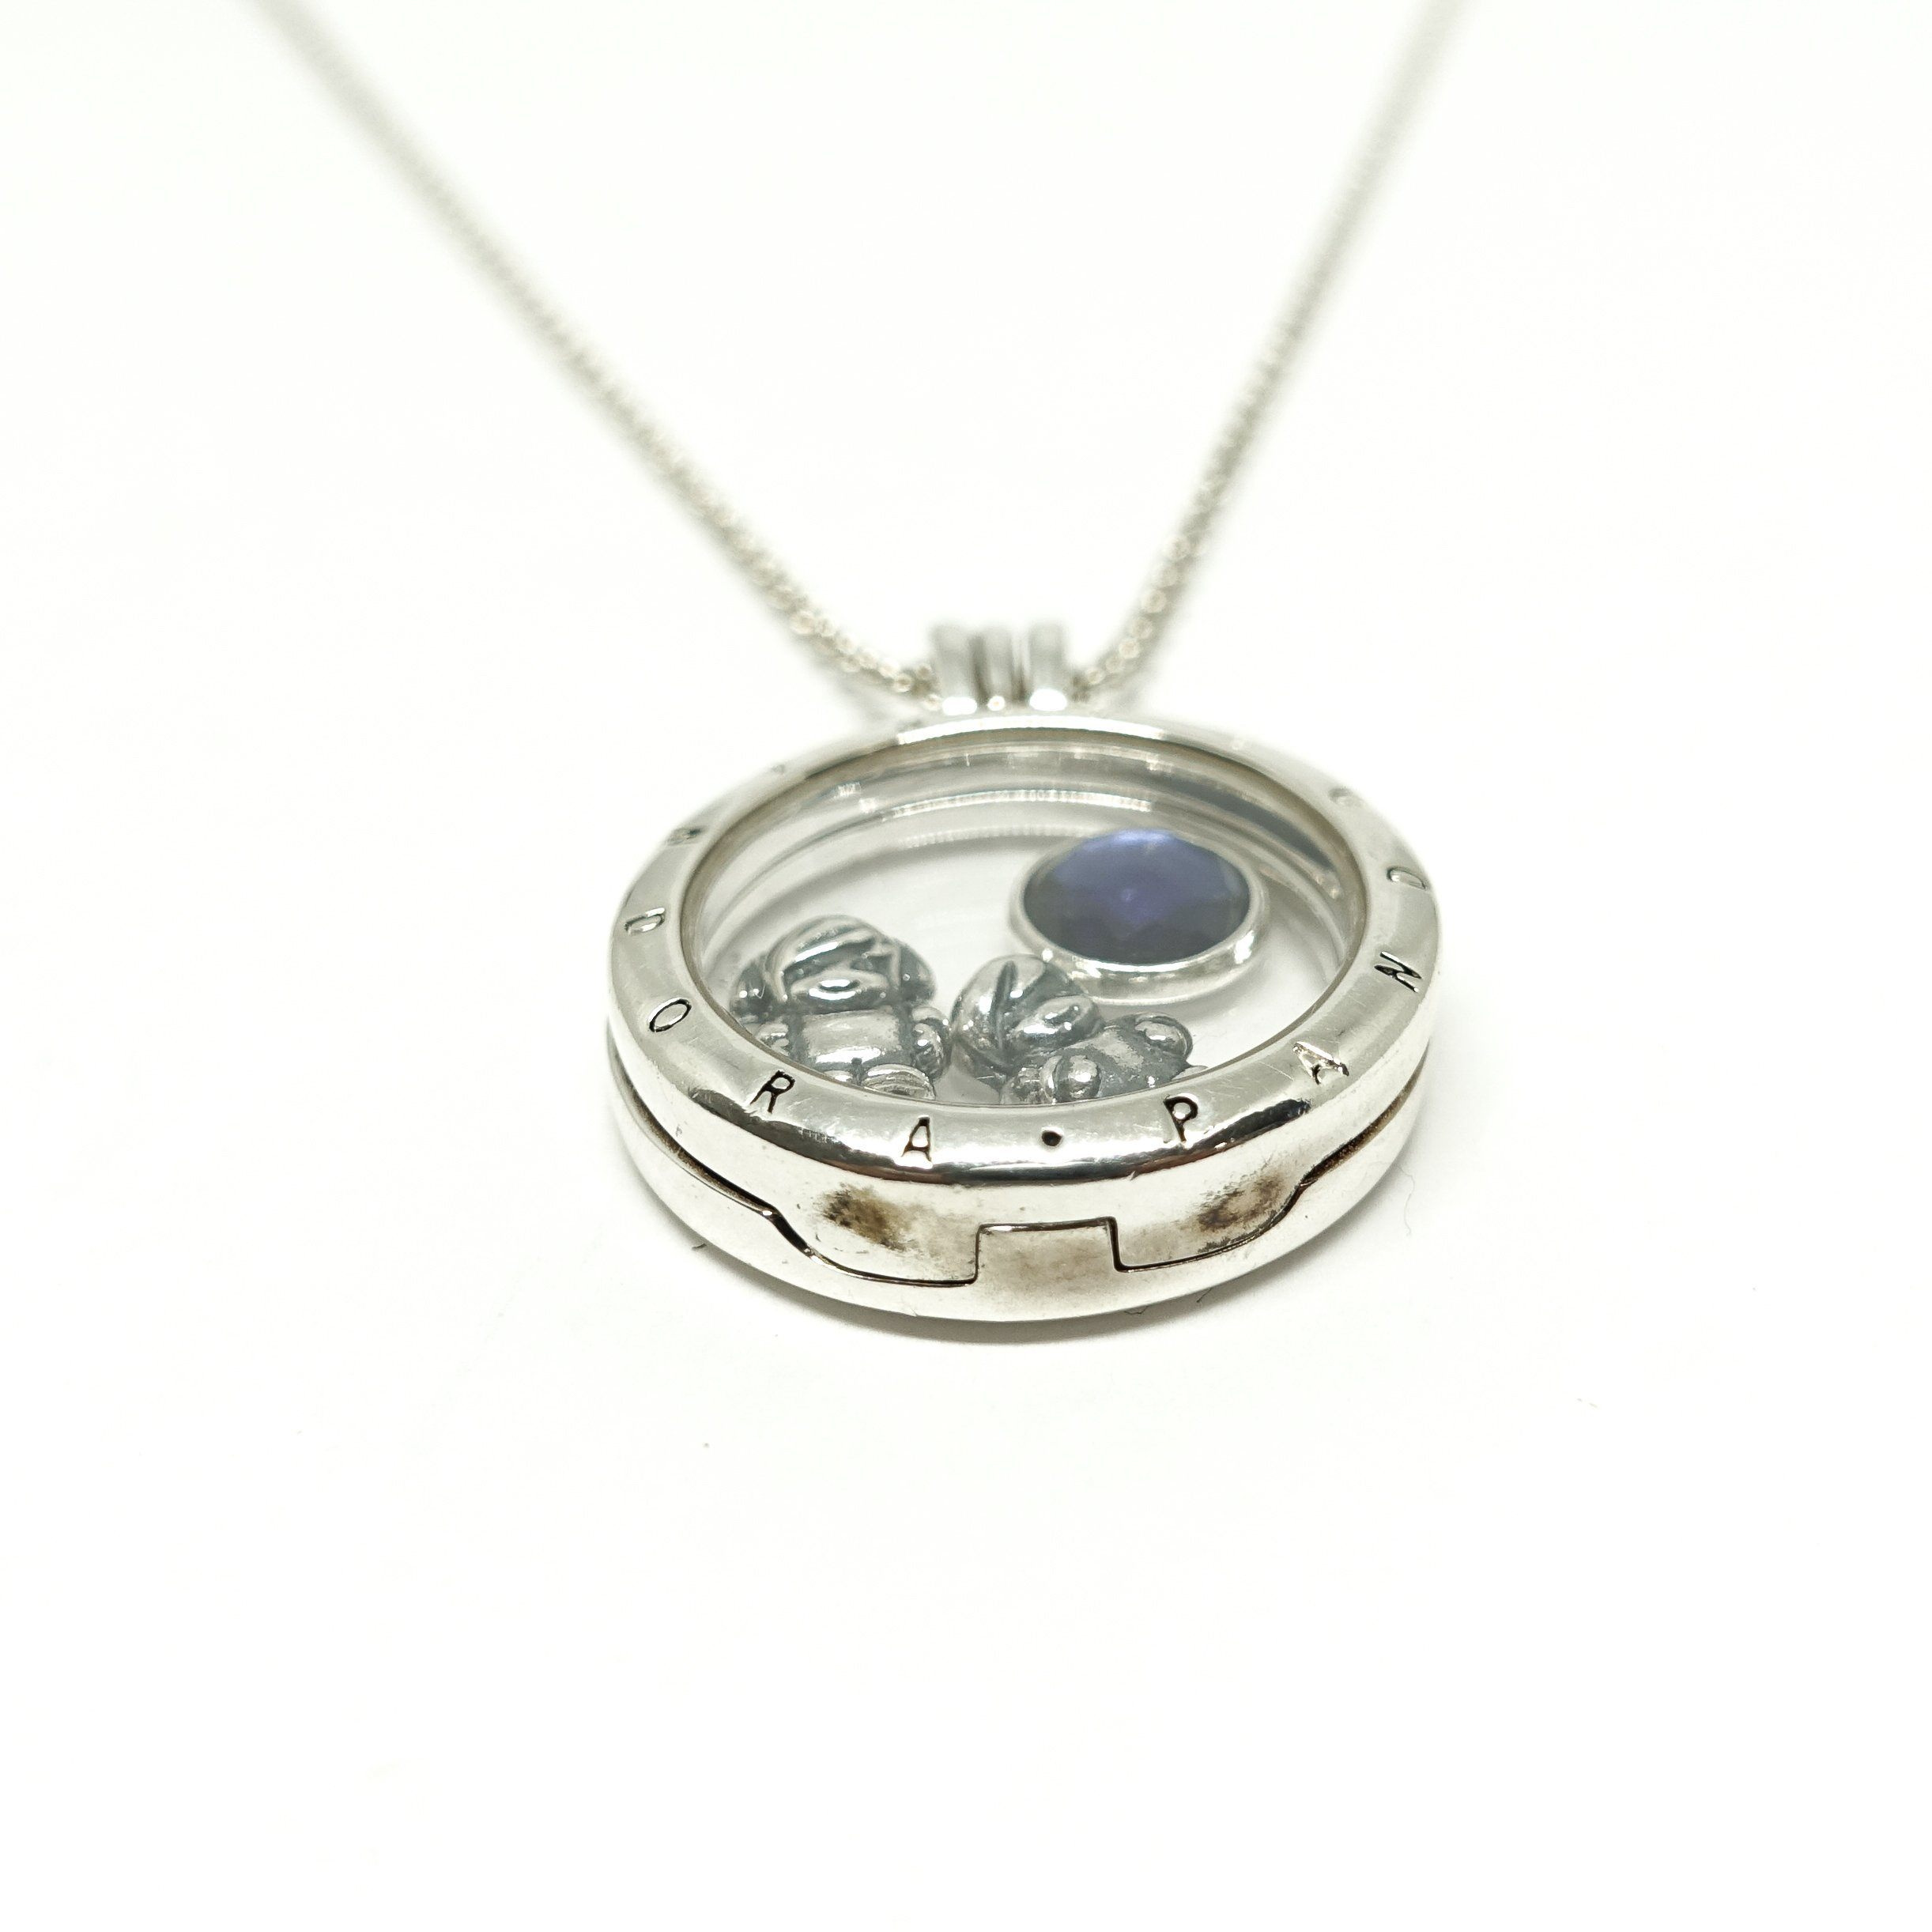 jewellery skinner pendant shaped a locket london photo georgian heart bentley regard